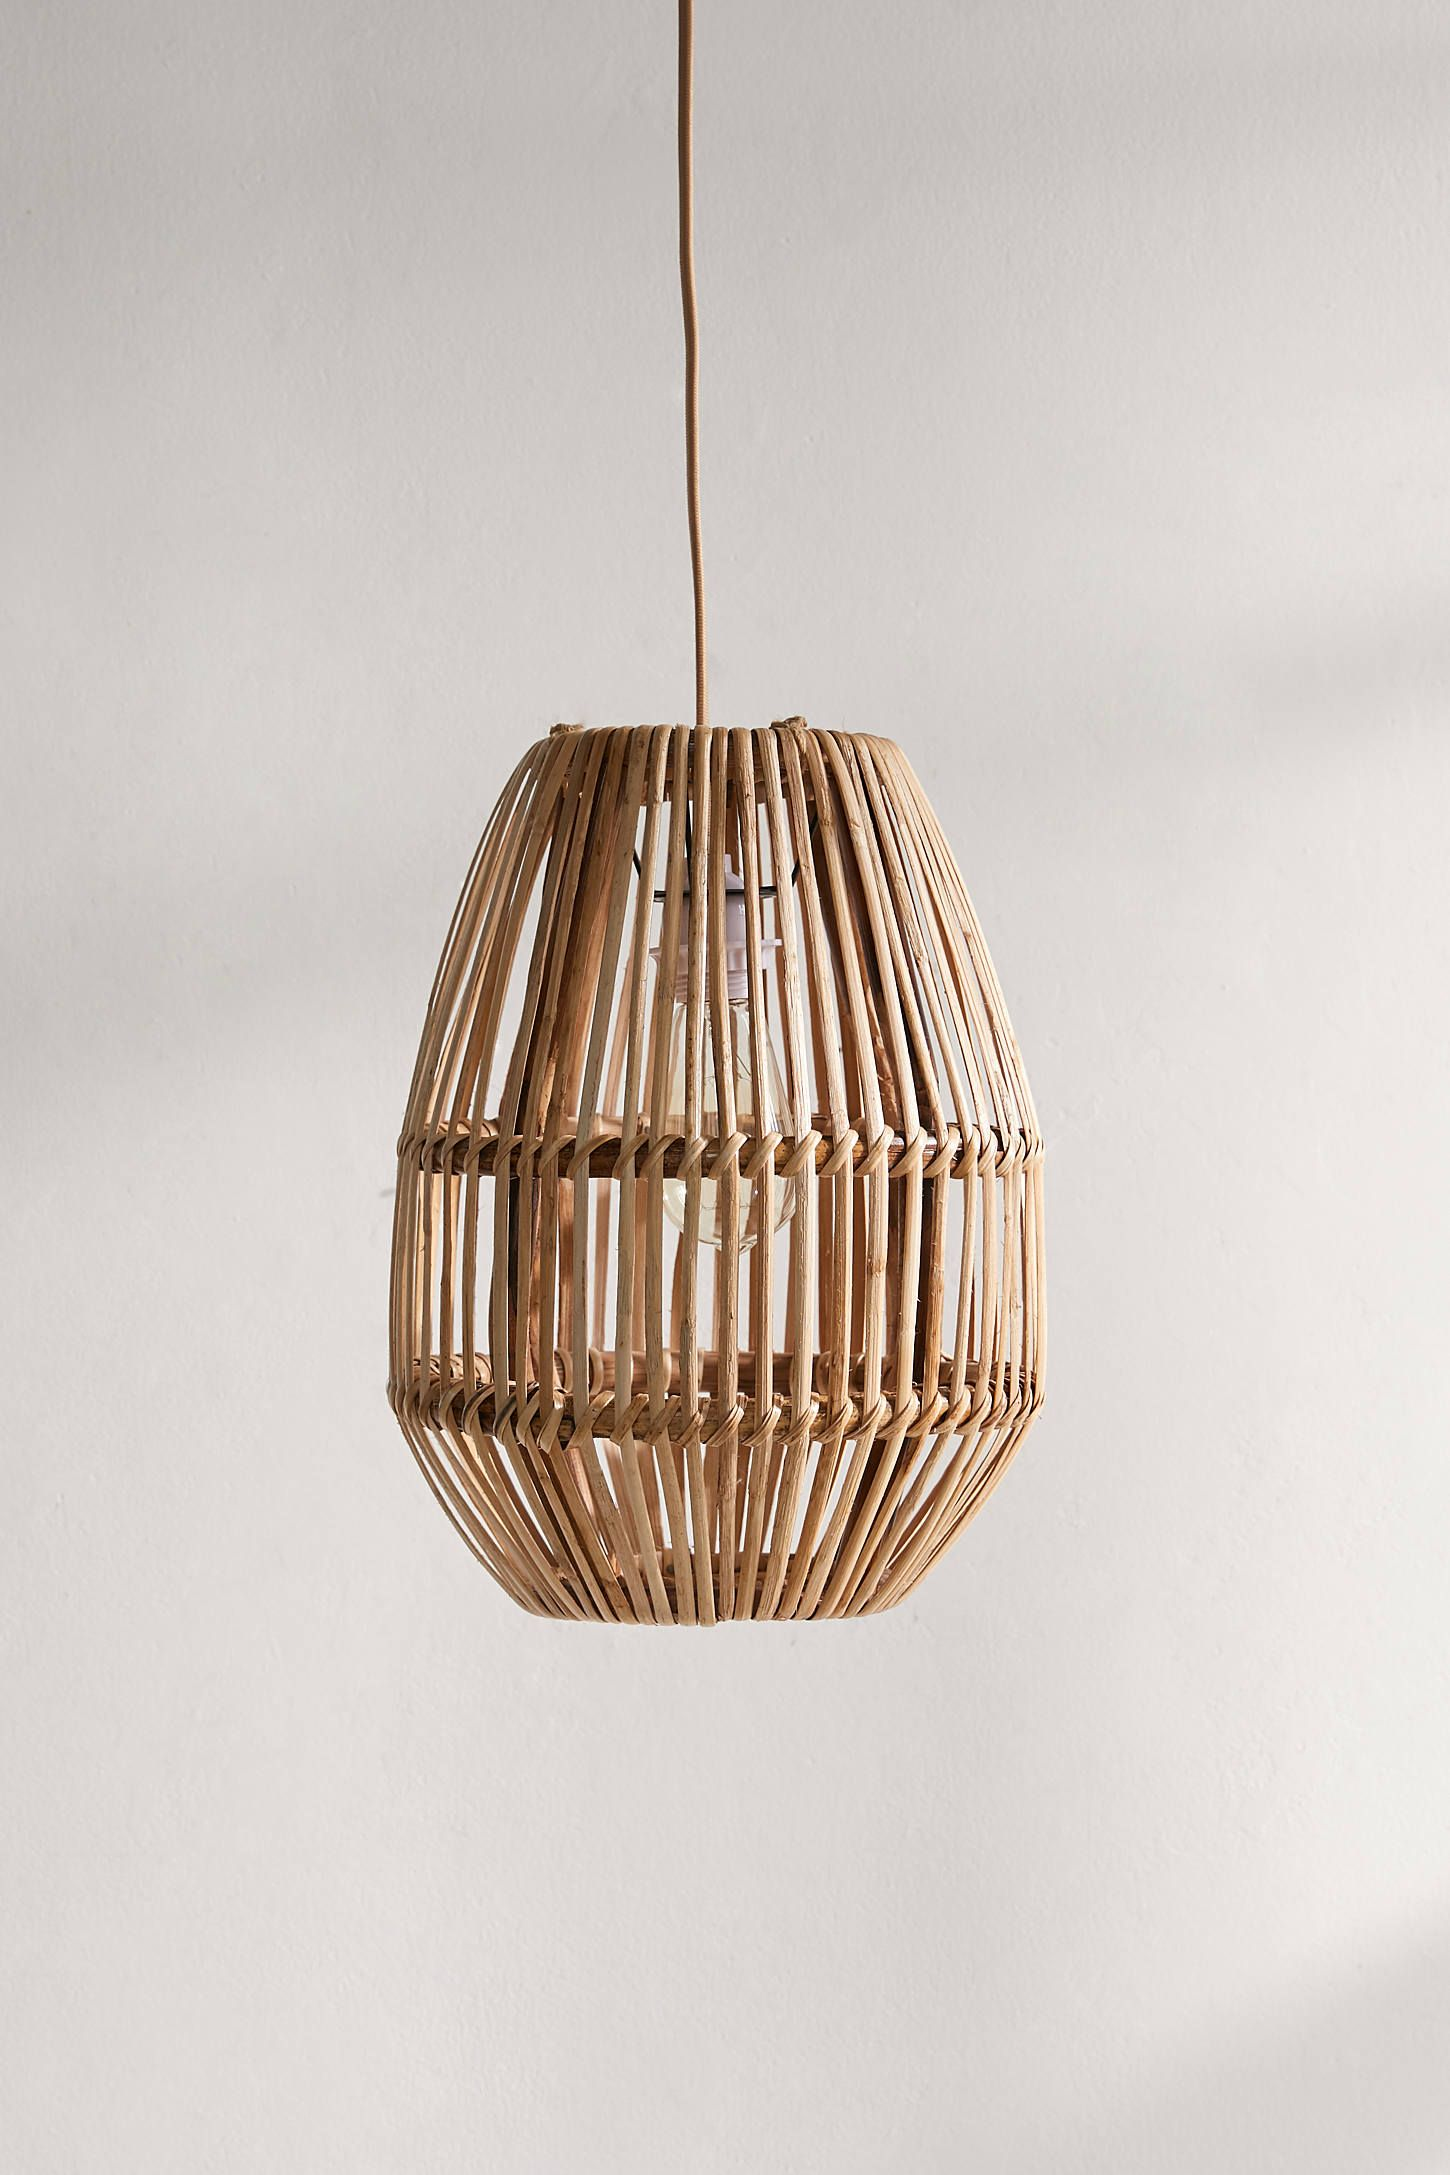 Bamboo Woven Pendant Light Pendant Light Bamboo Light Rattan Pendant Light